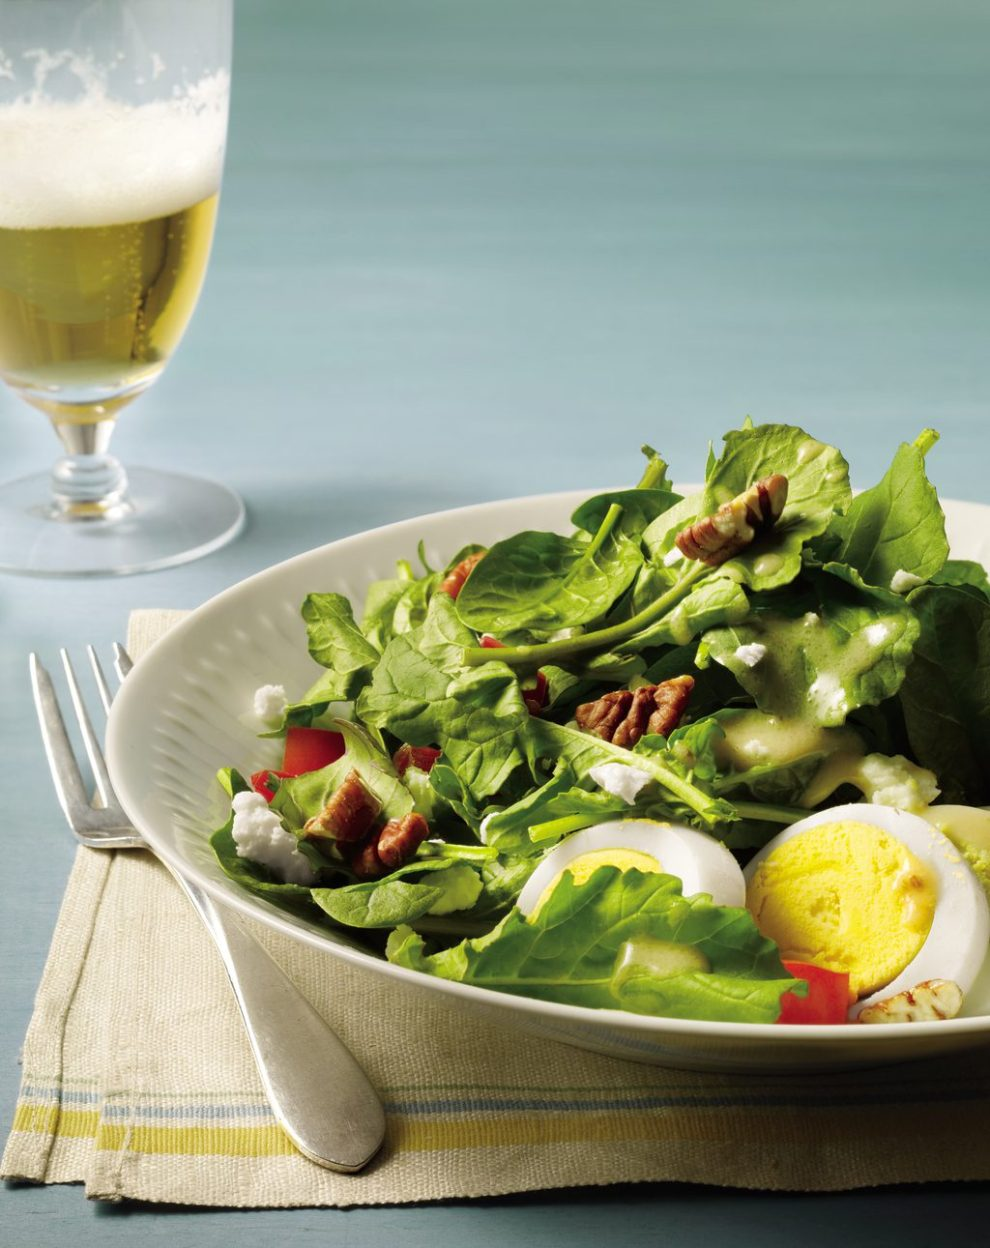 beer-with-salad